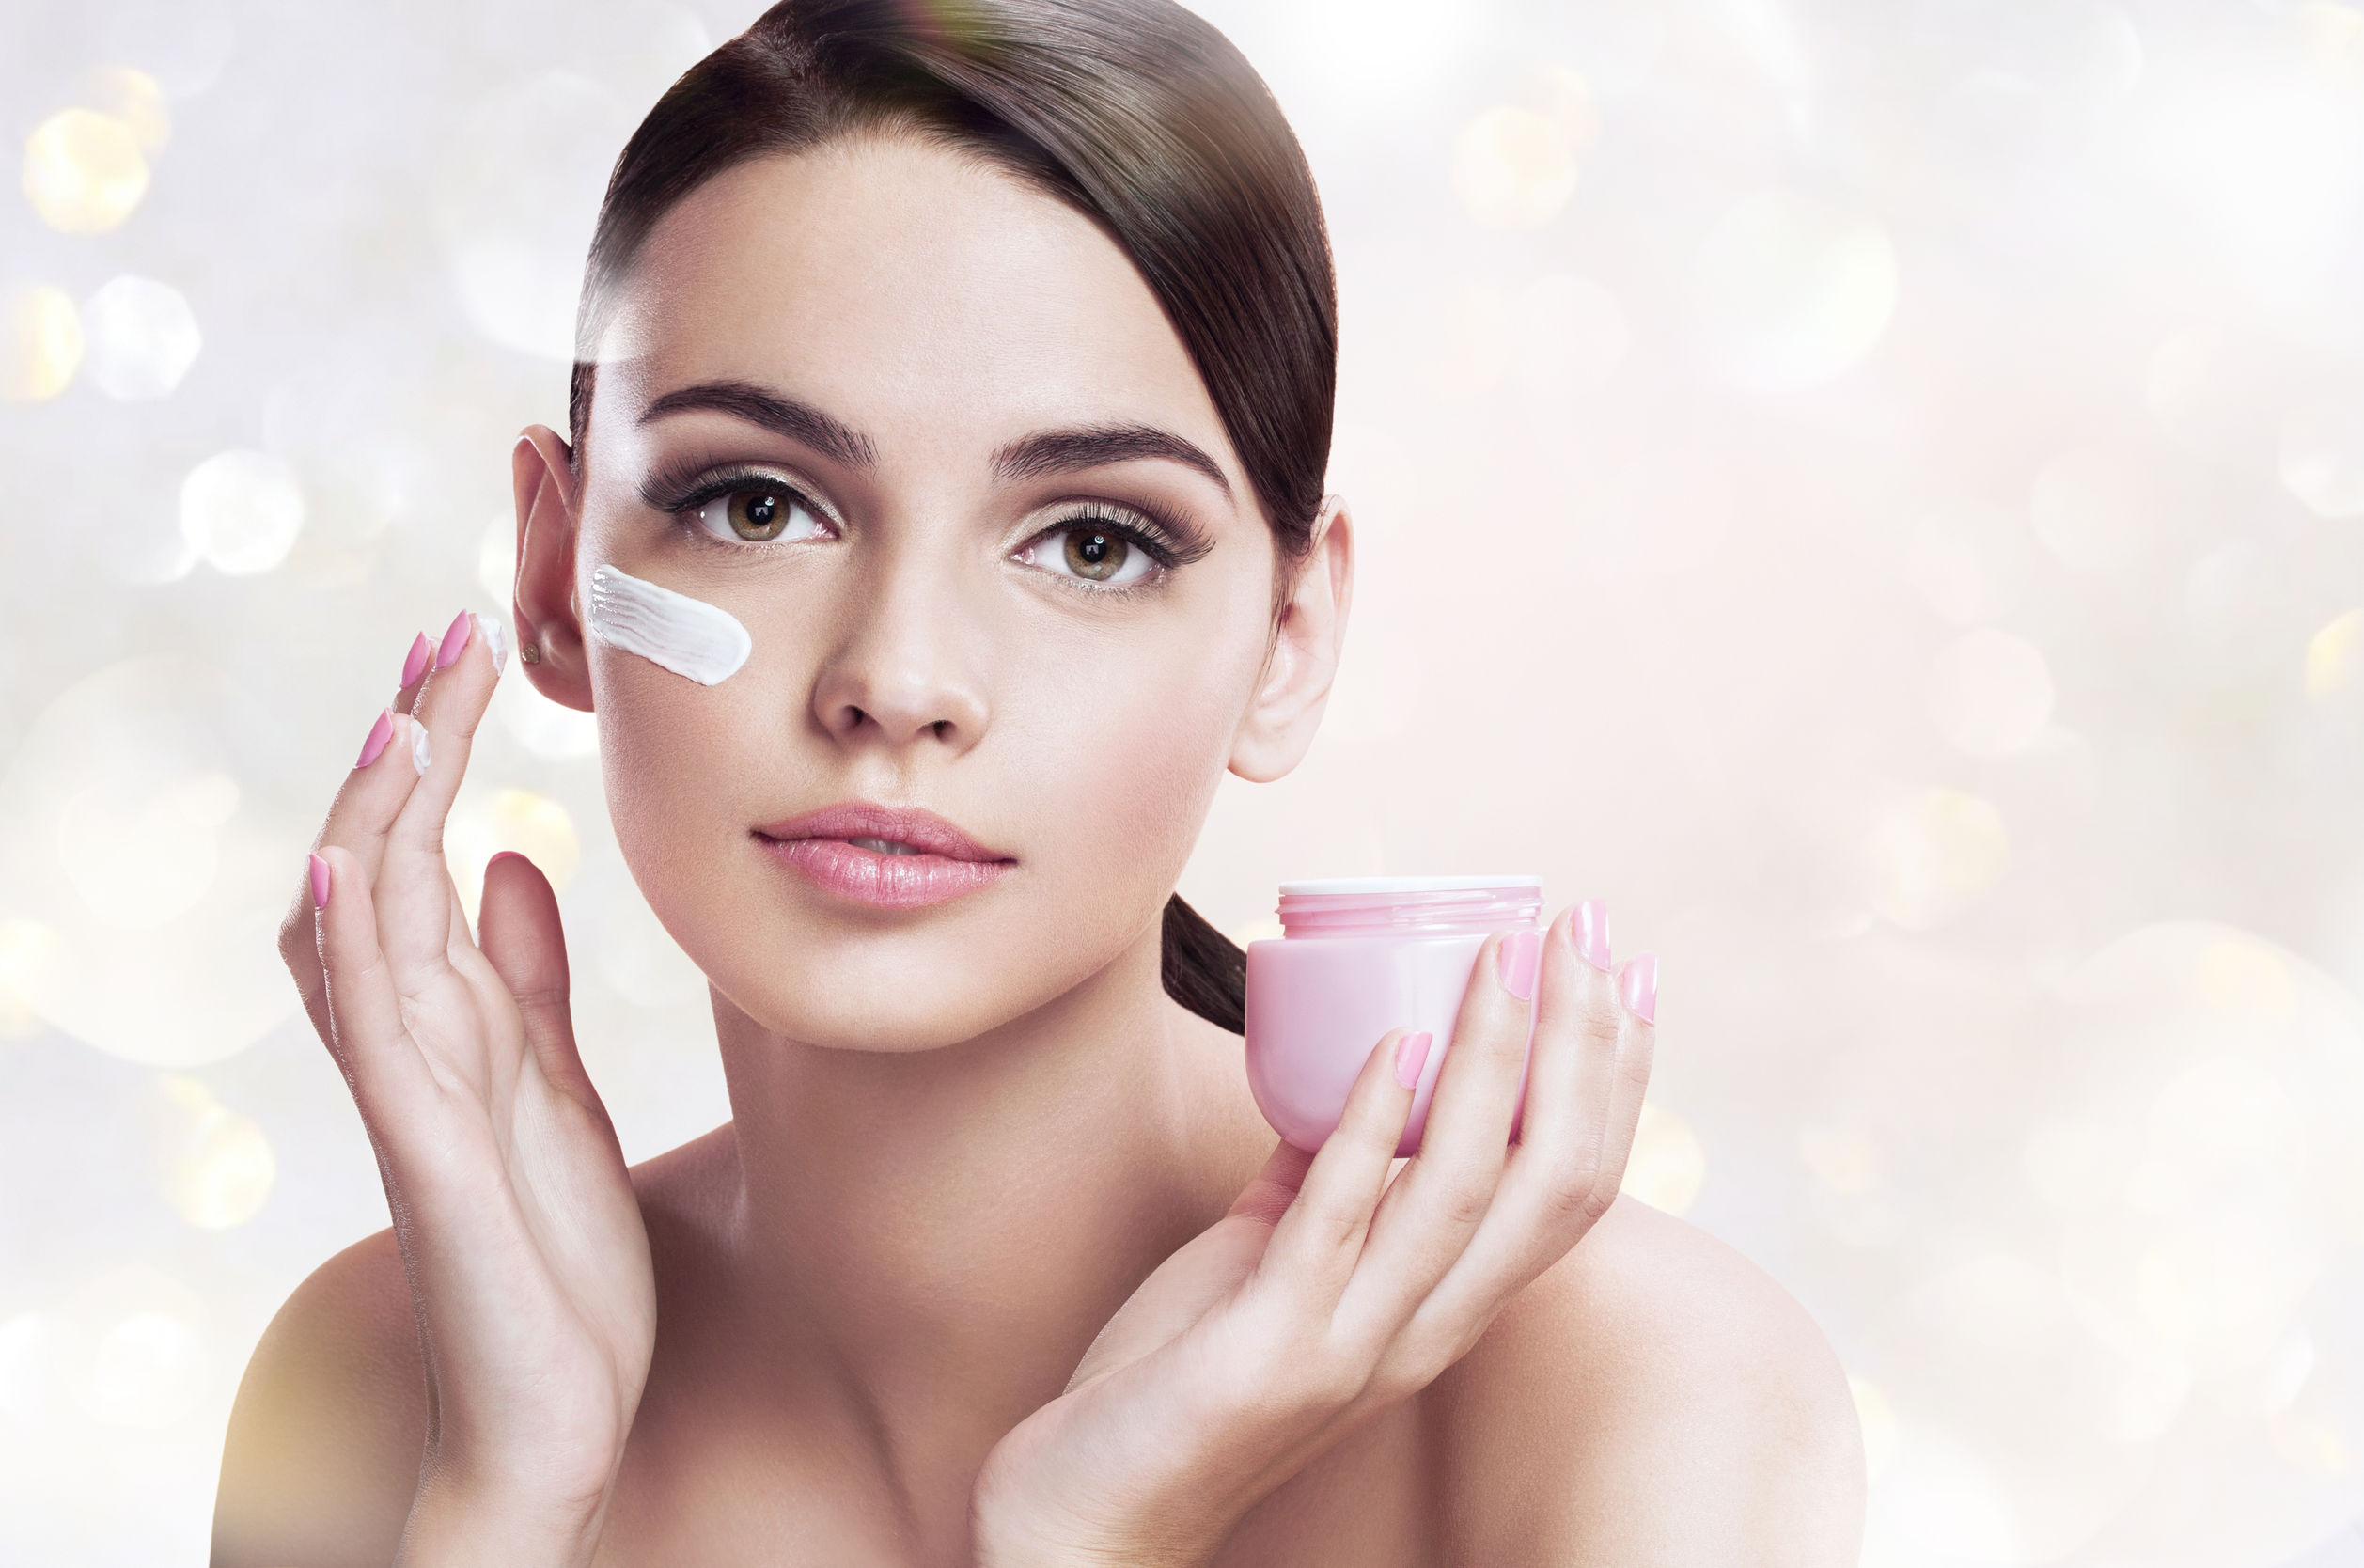 38022079 - beautiful young woman applying moisturizing creme, skin care concept